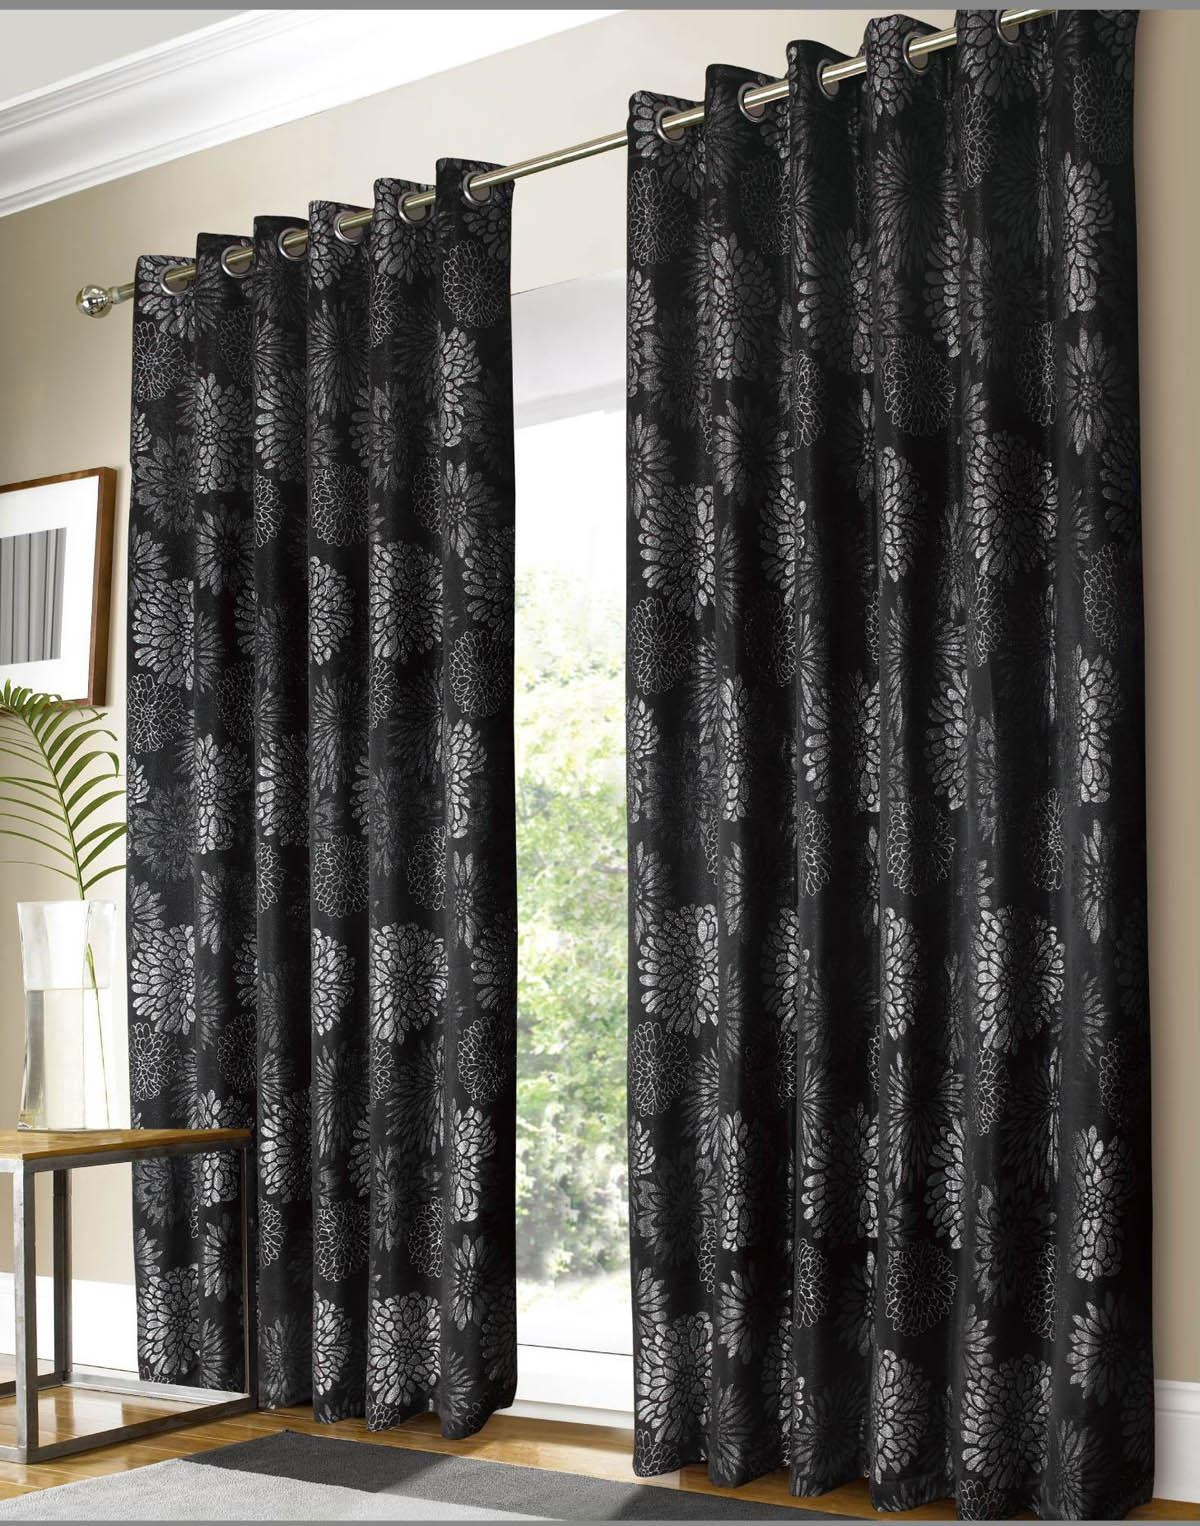 15 Black And Brown Curtains Curtain Ideas